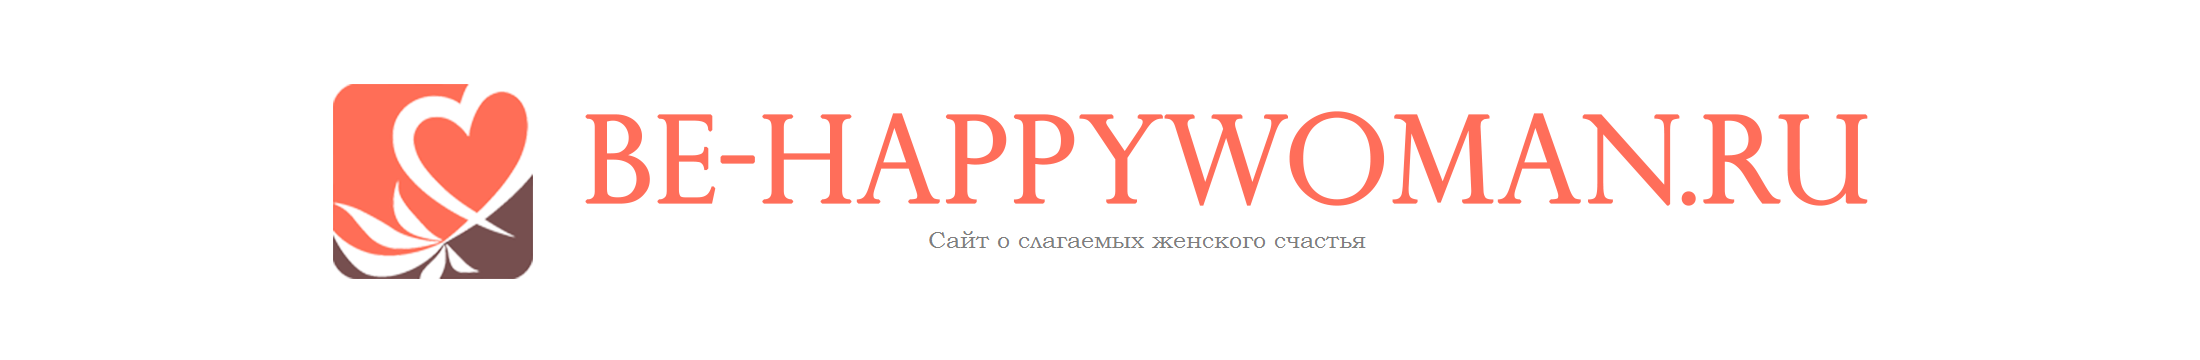 Be-happywoman.ru